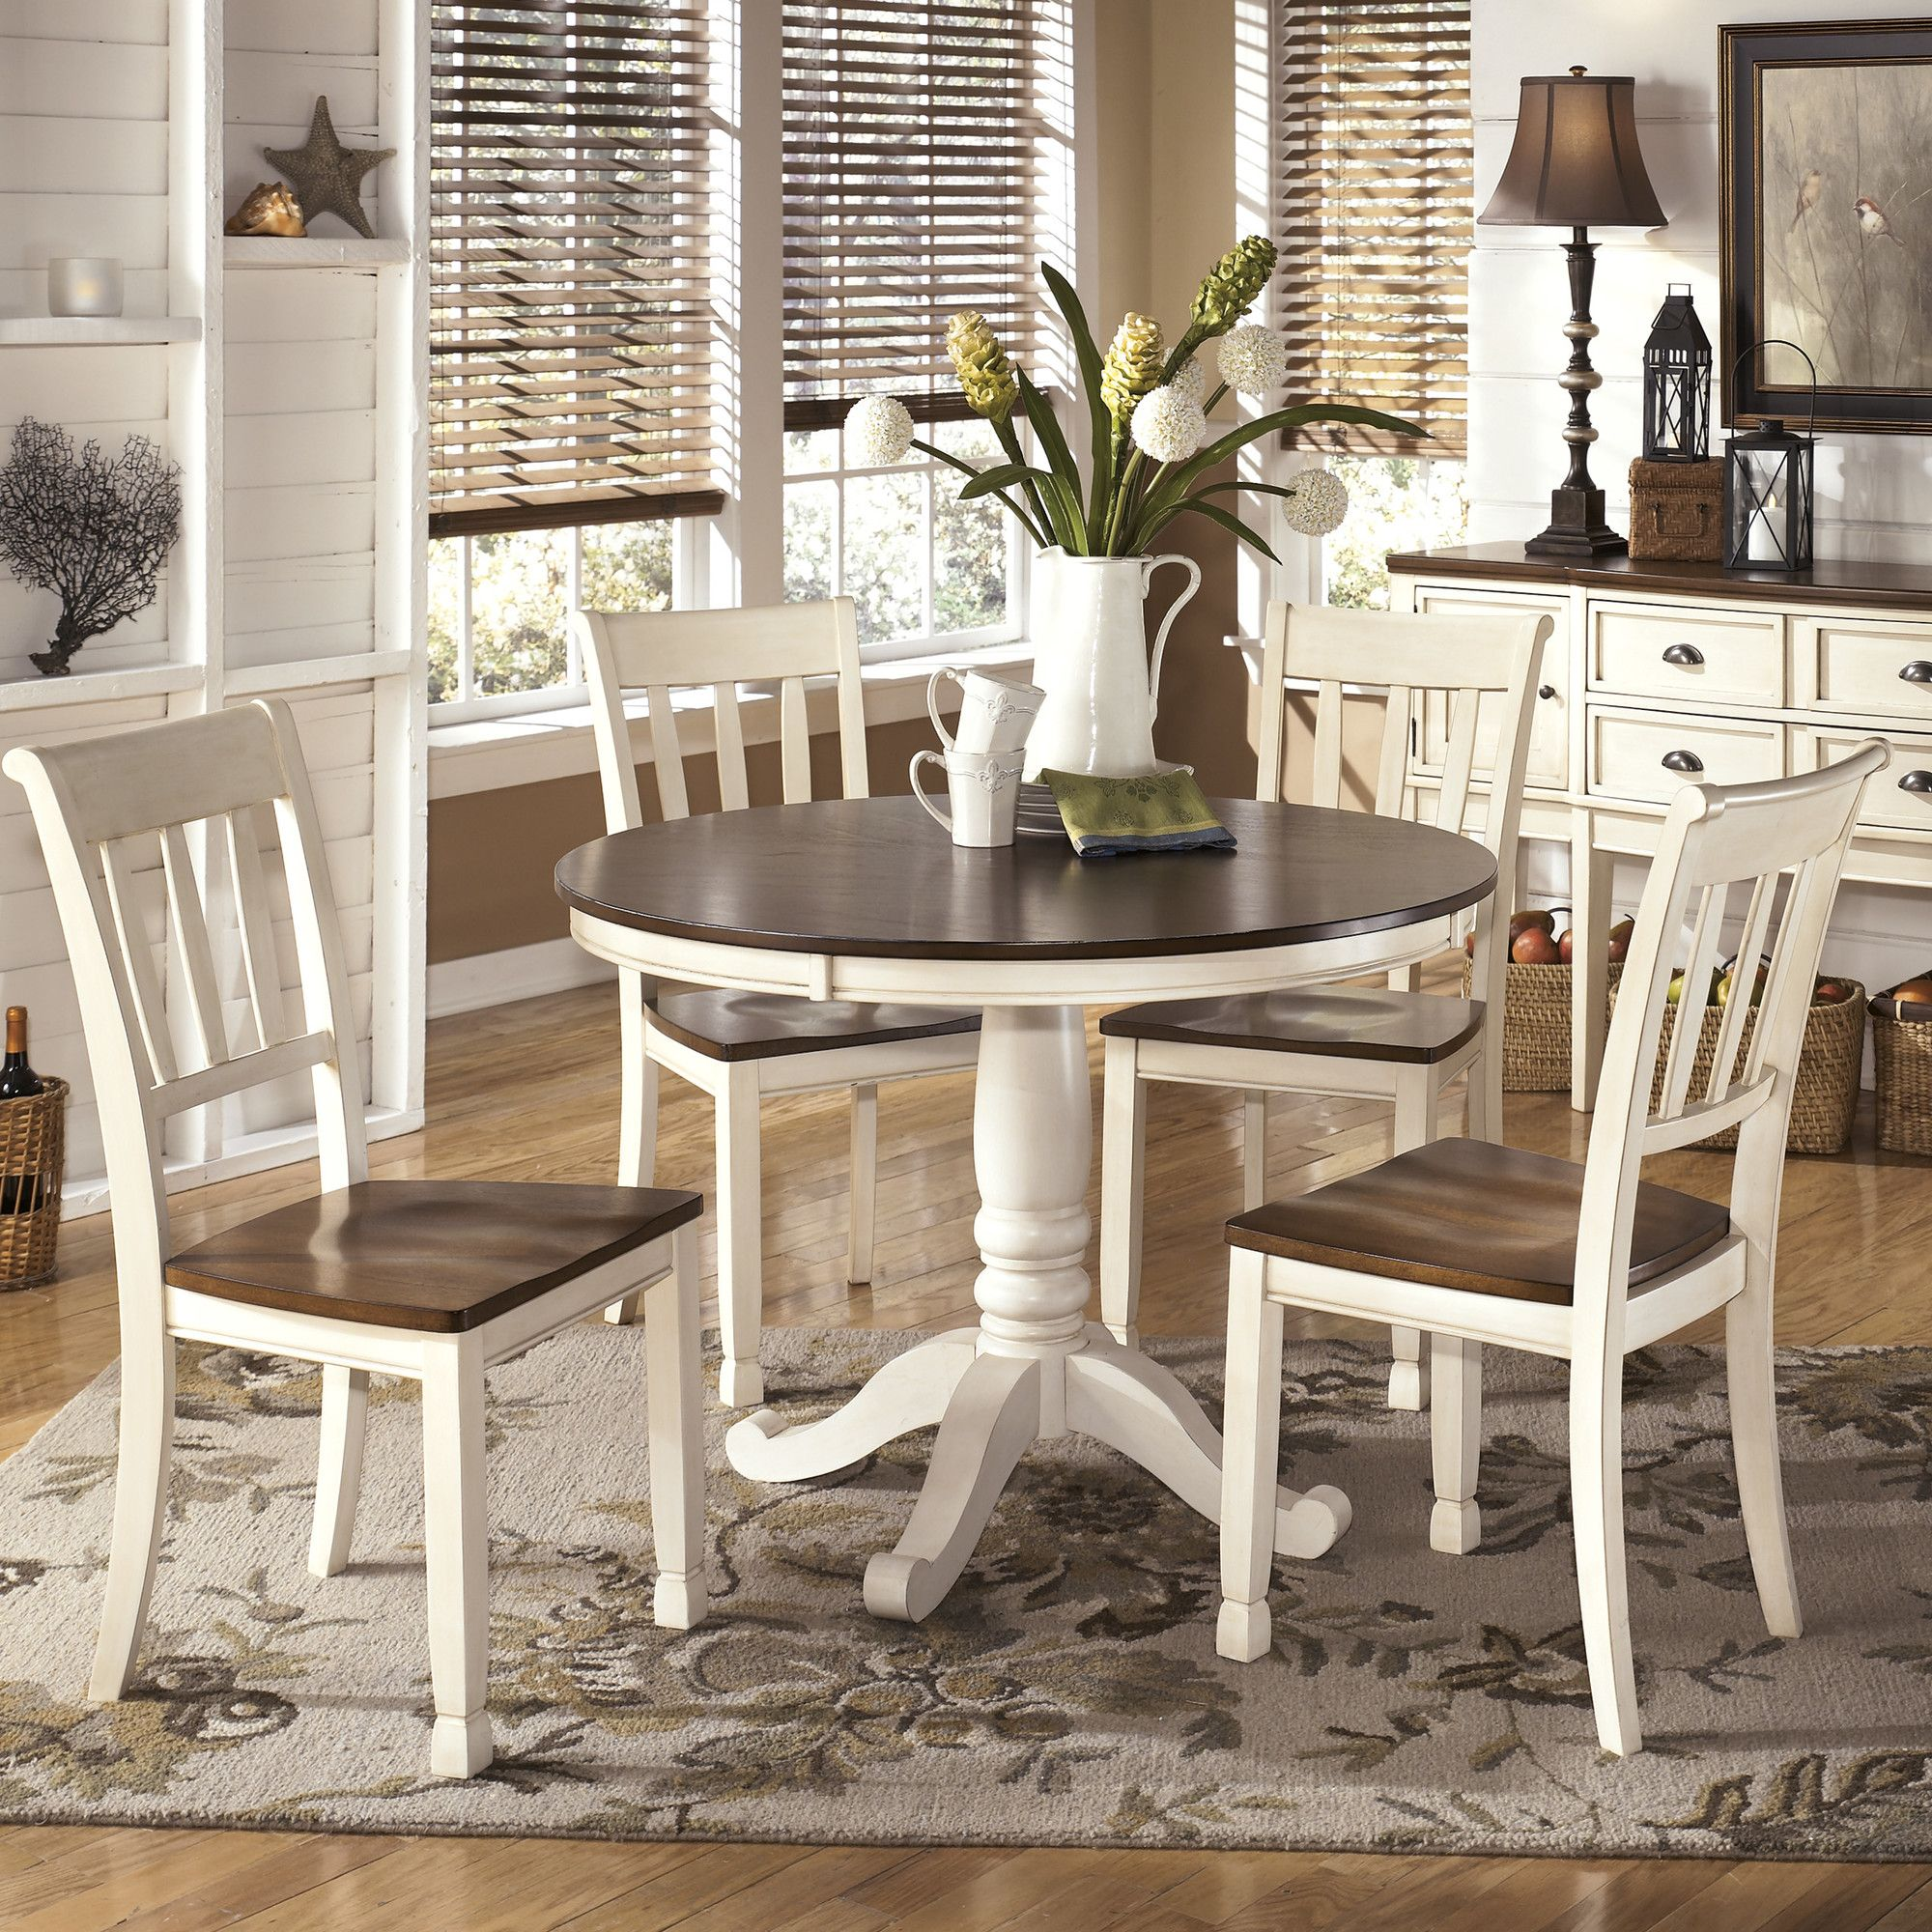 Throckmorton 5 Piece Dining Set